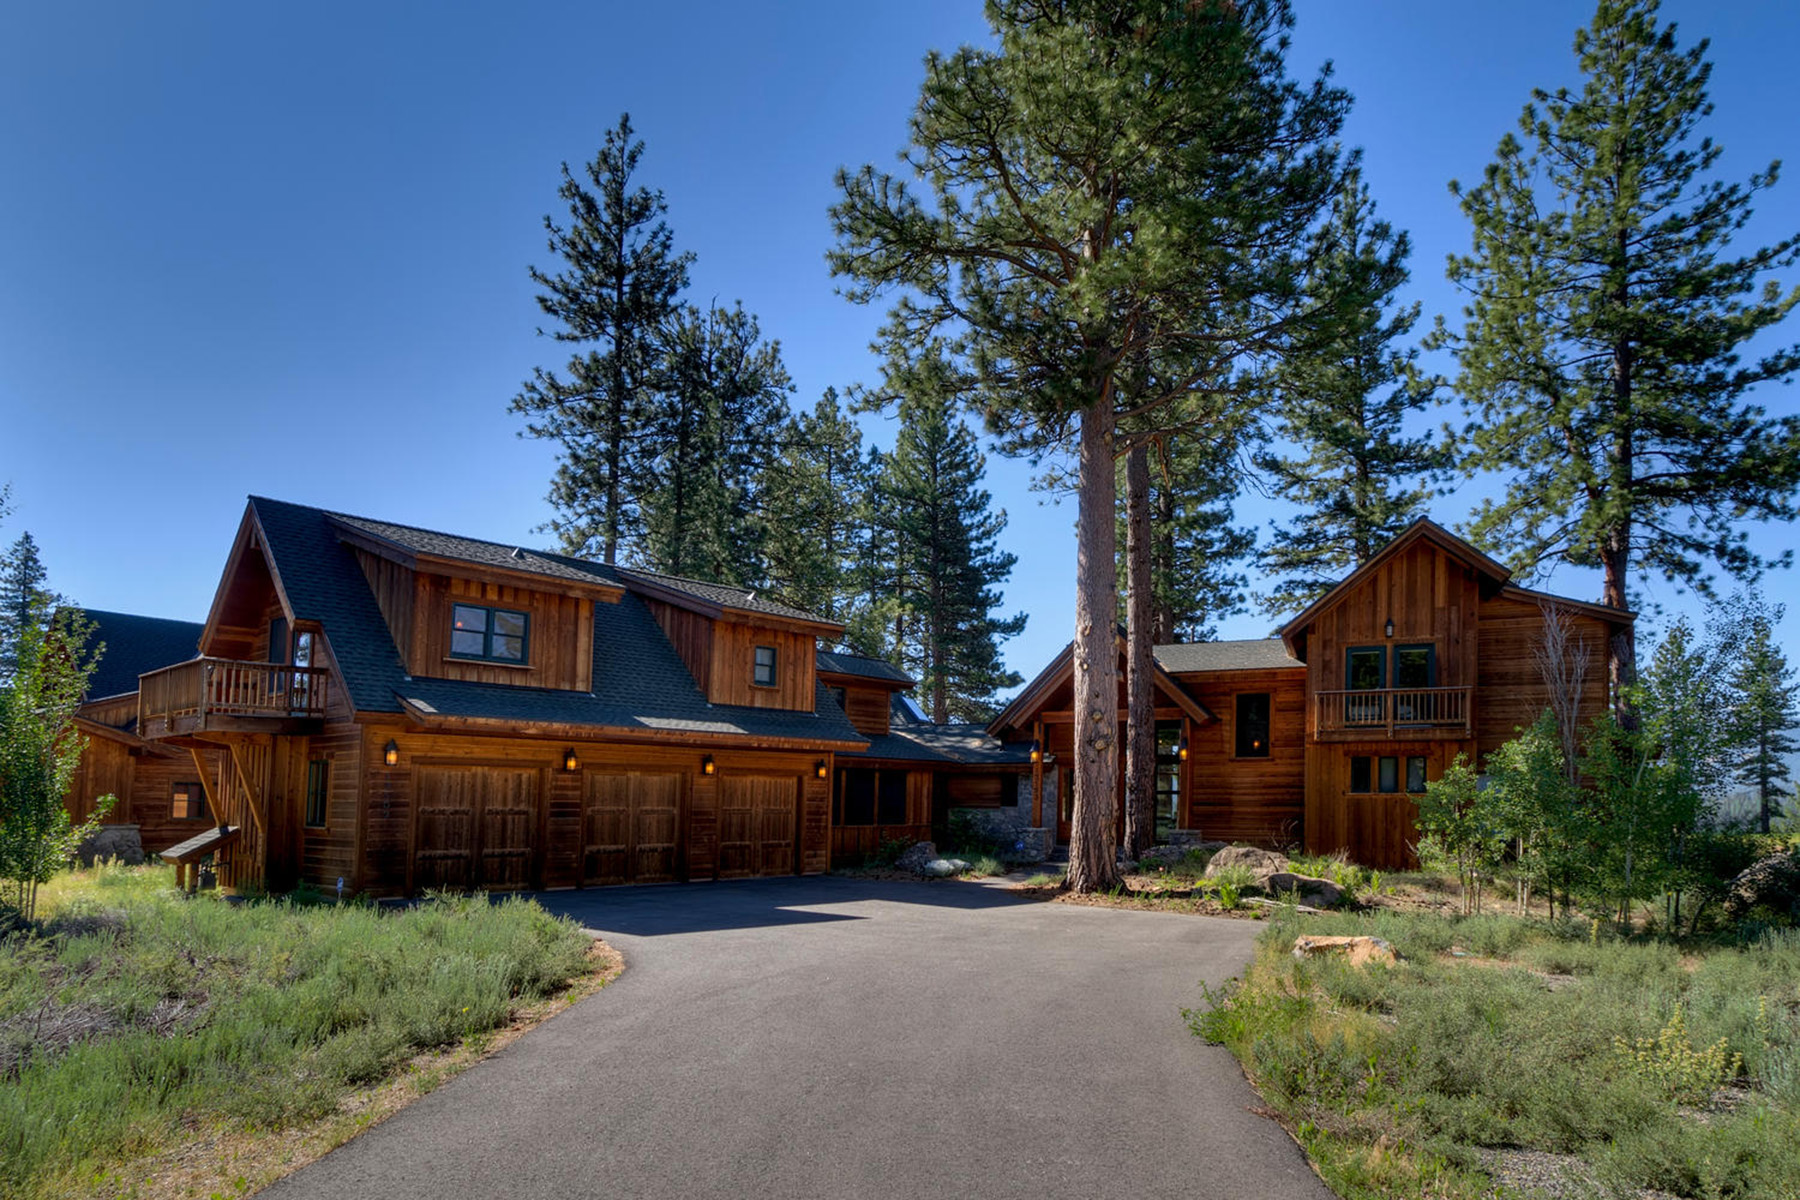 Single Family Home for Active at 13103 Lookout Loop Truckee, California 96161 United States